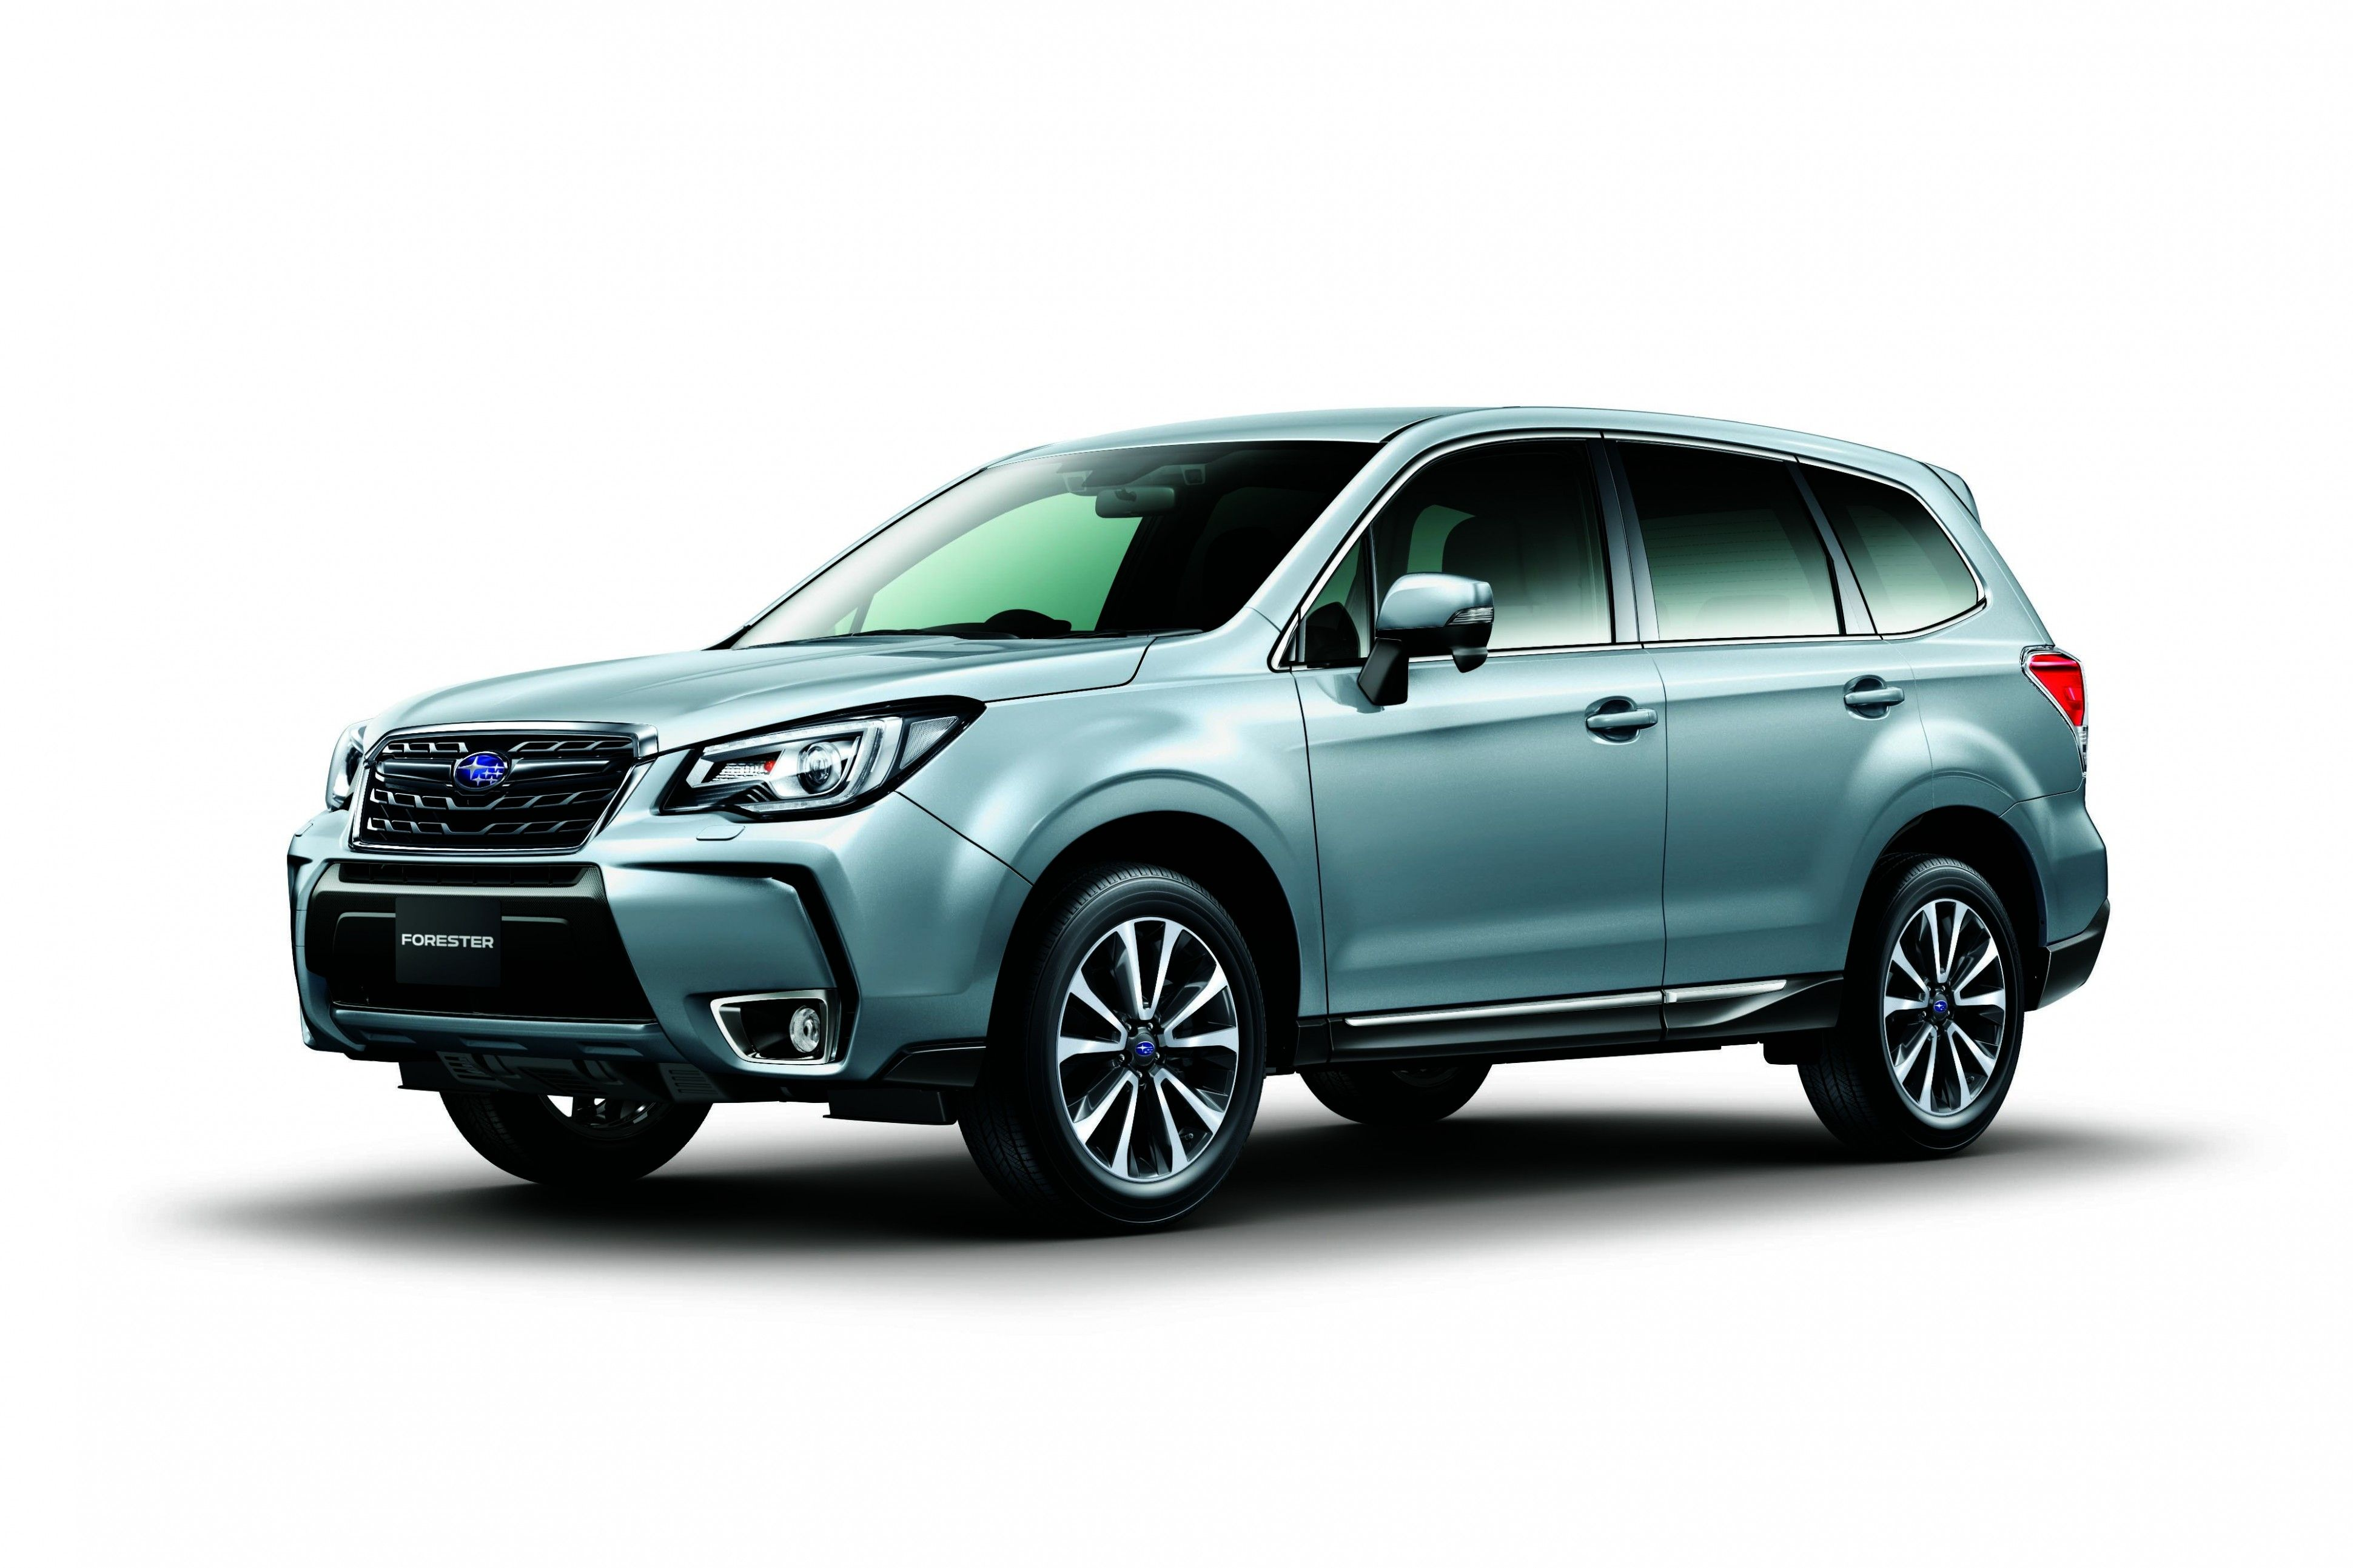 2020 Subaru Forester Colors Pricing Subaru Forester Subaru Car